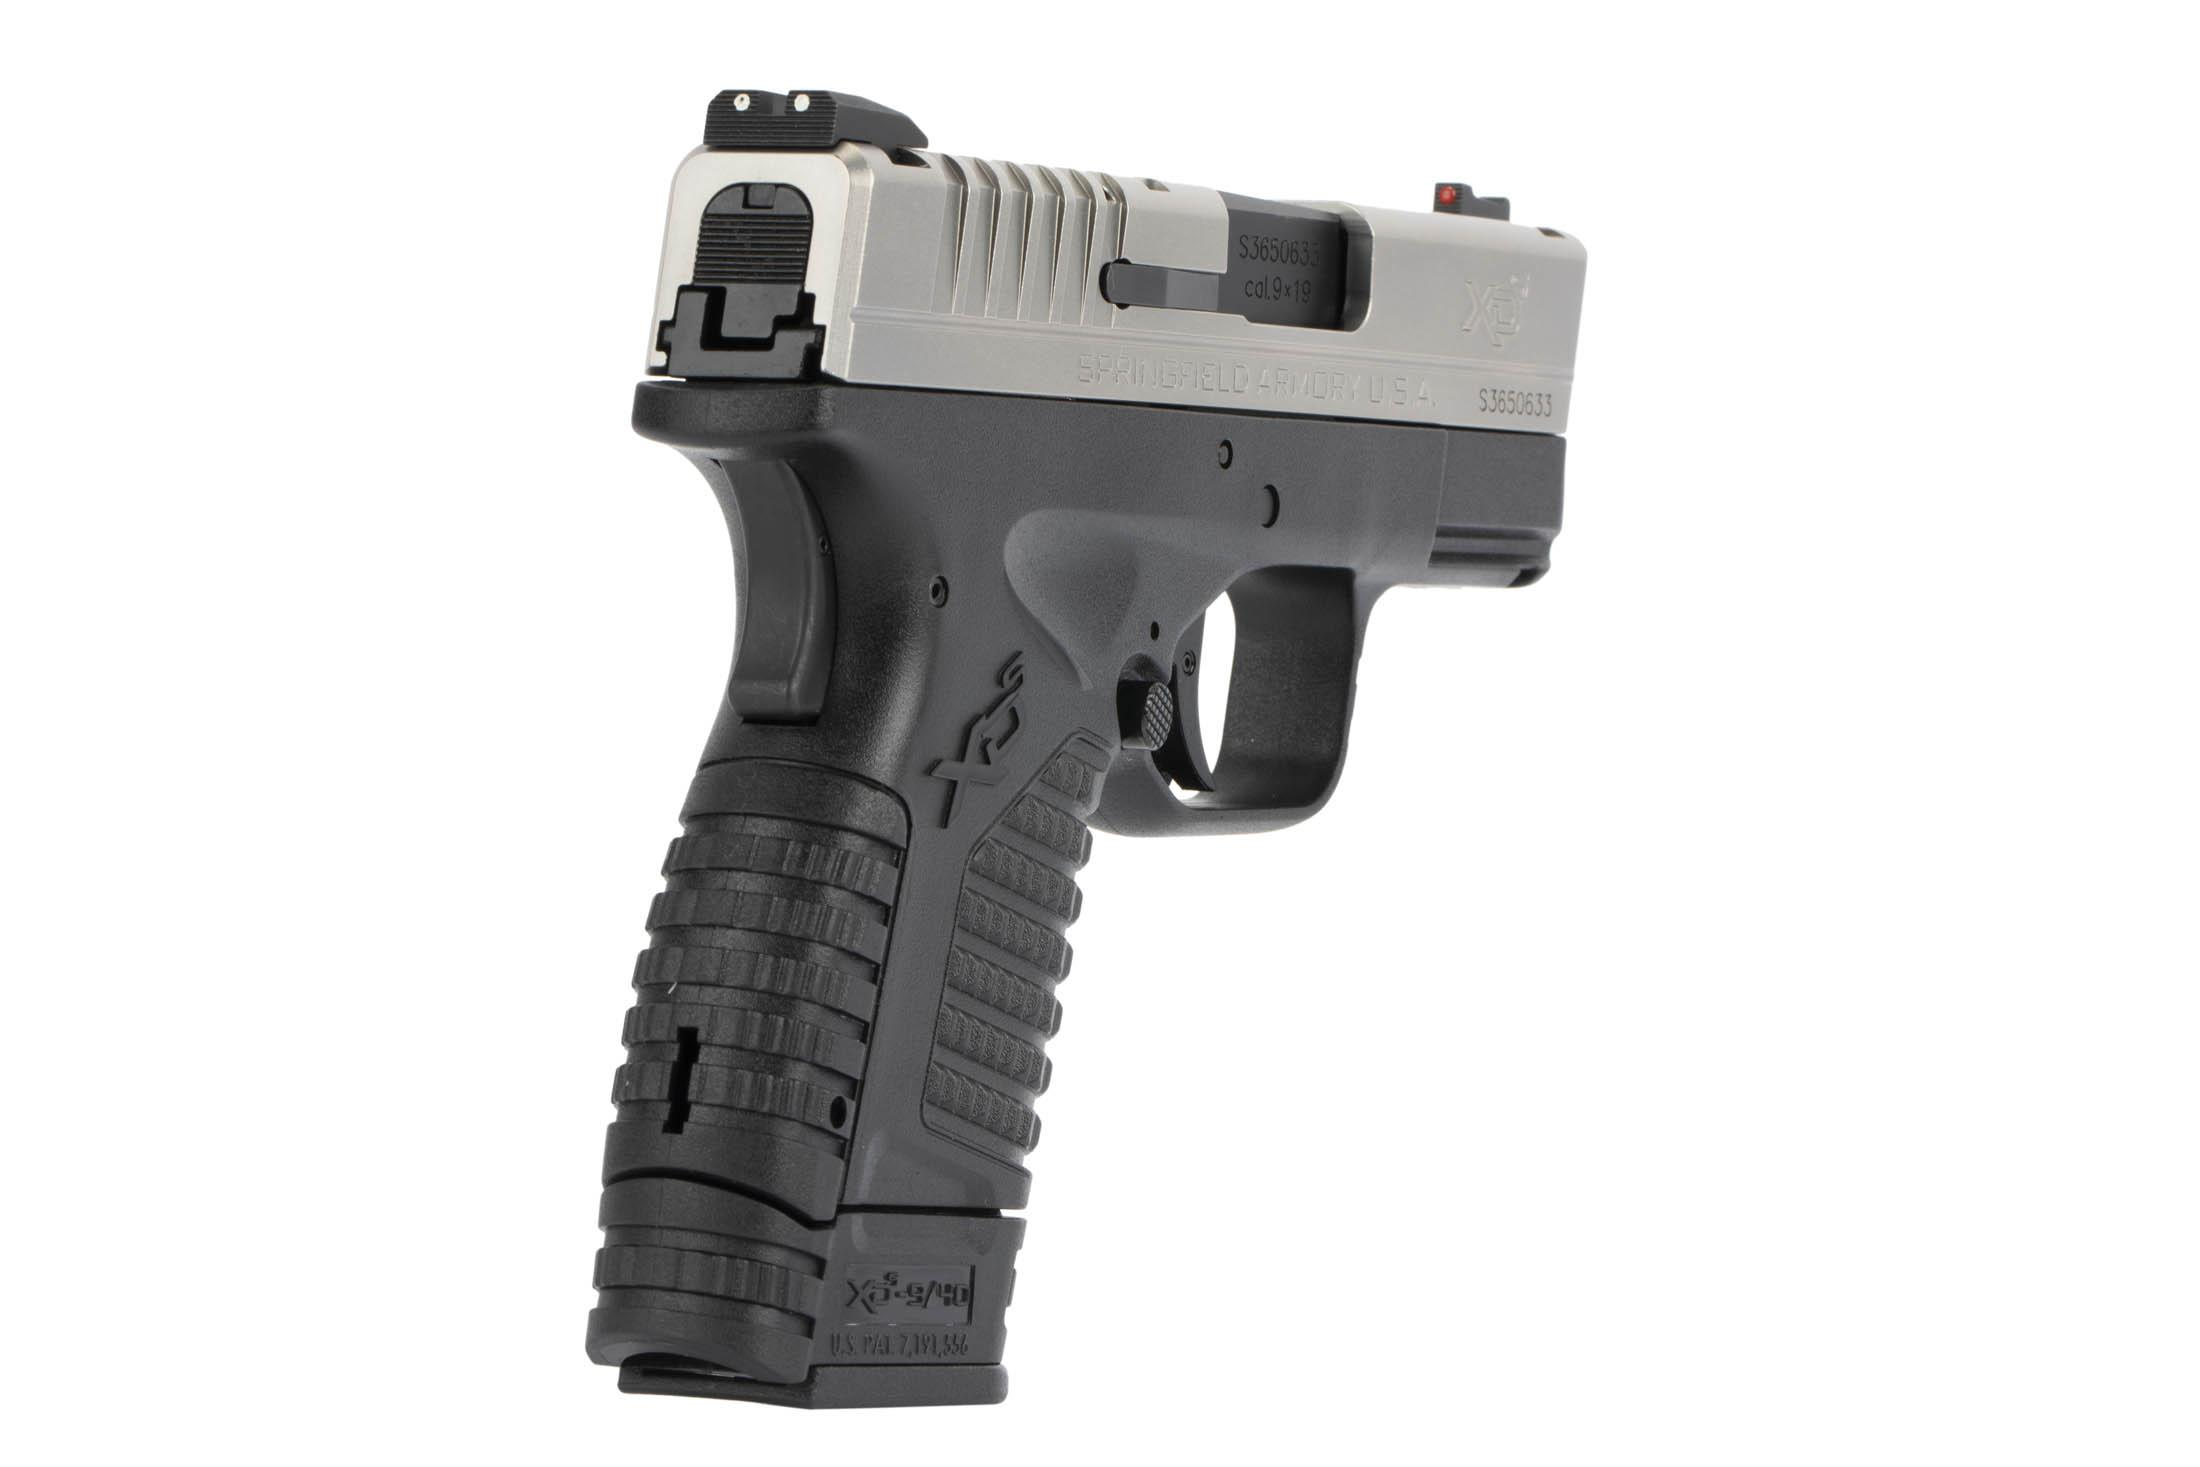 The Springfield Armory XD-S is a 9mm Sub Compact 8 round Handgun with three dot fiber optic iron sights